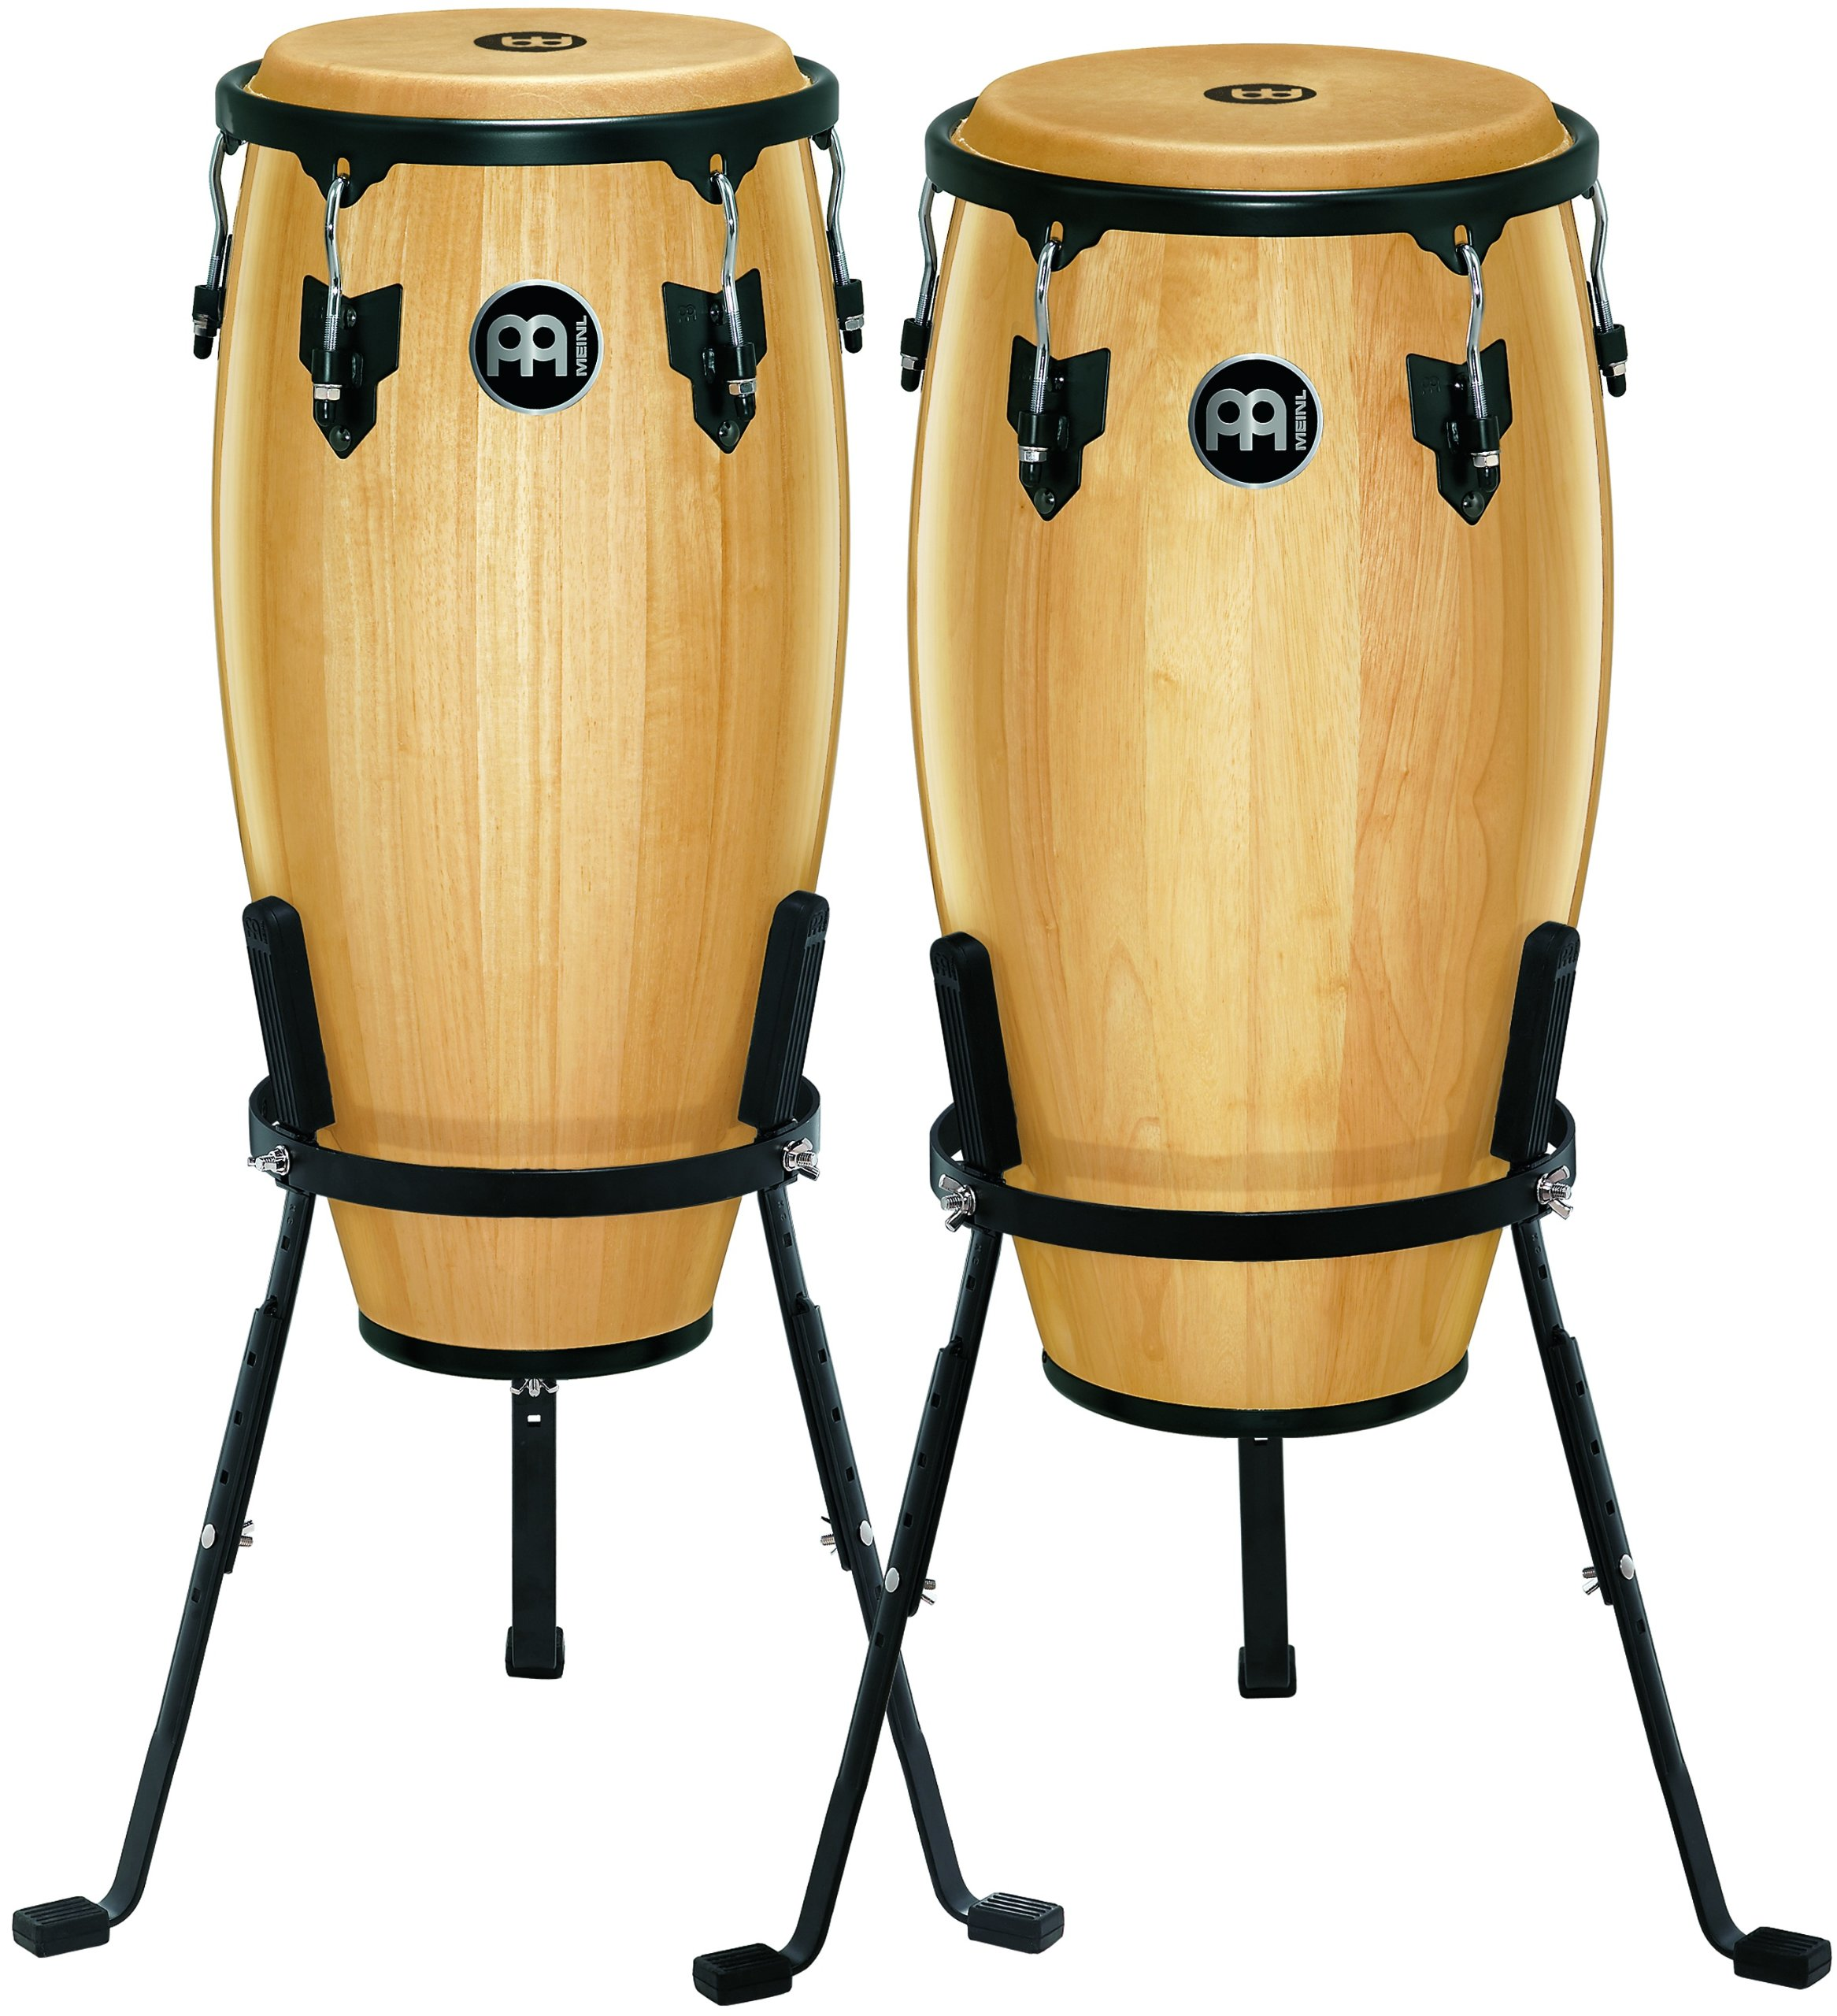 Meinl Percussion HC512NT Headliner Series 11-Inch and 12-Inch Conga Set With Basket Stands, Natural by Meinl Percussion